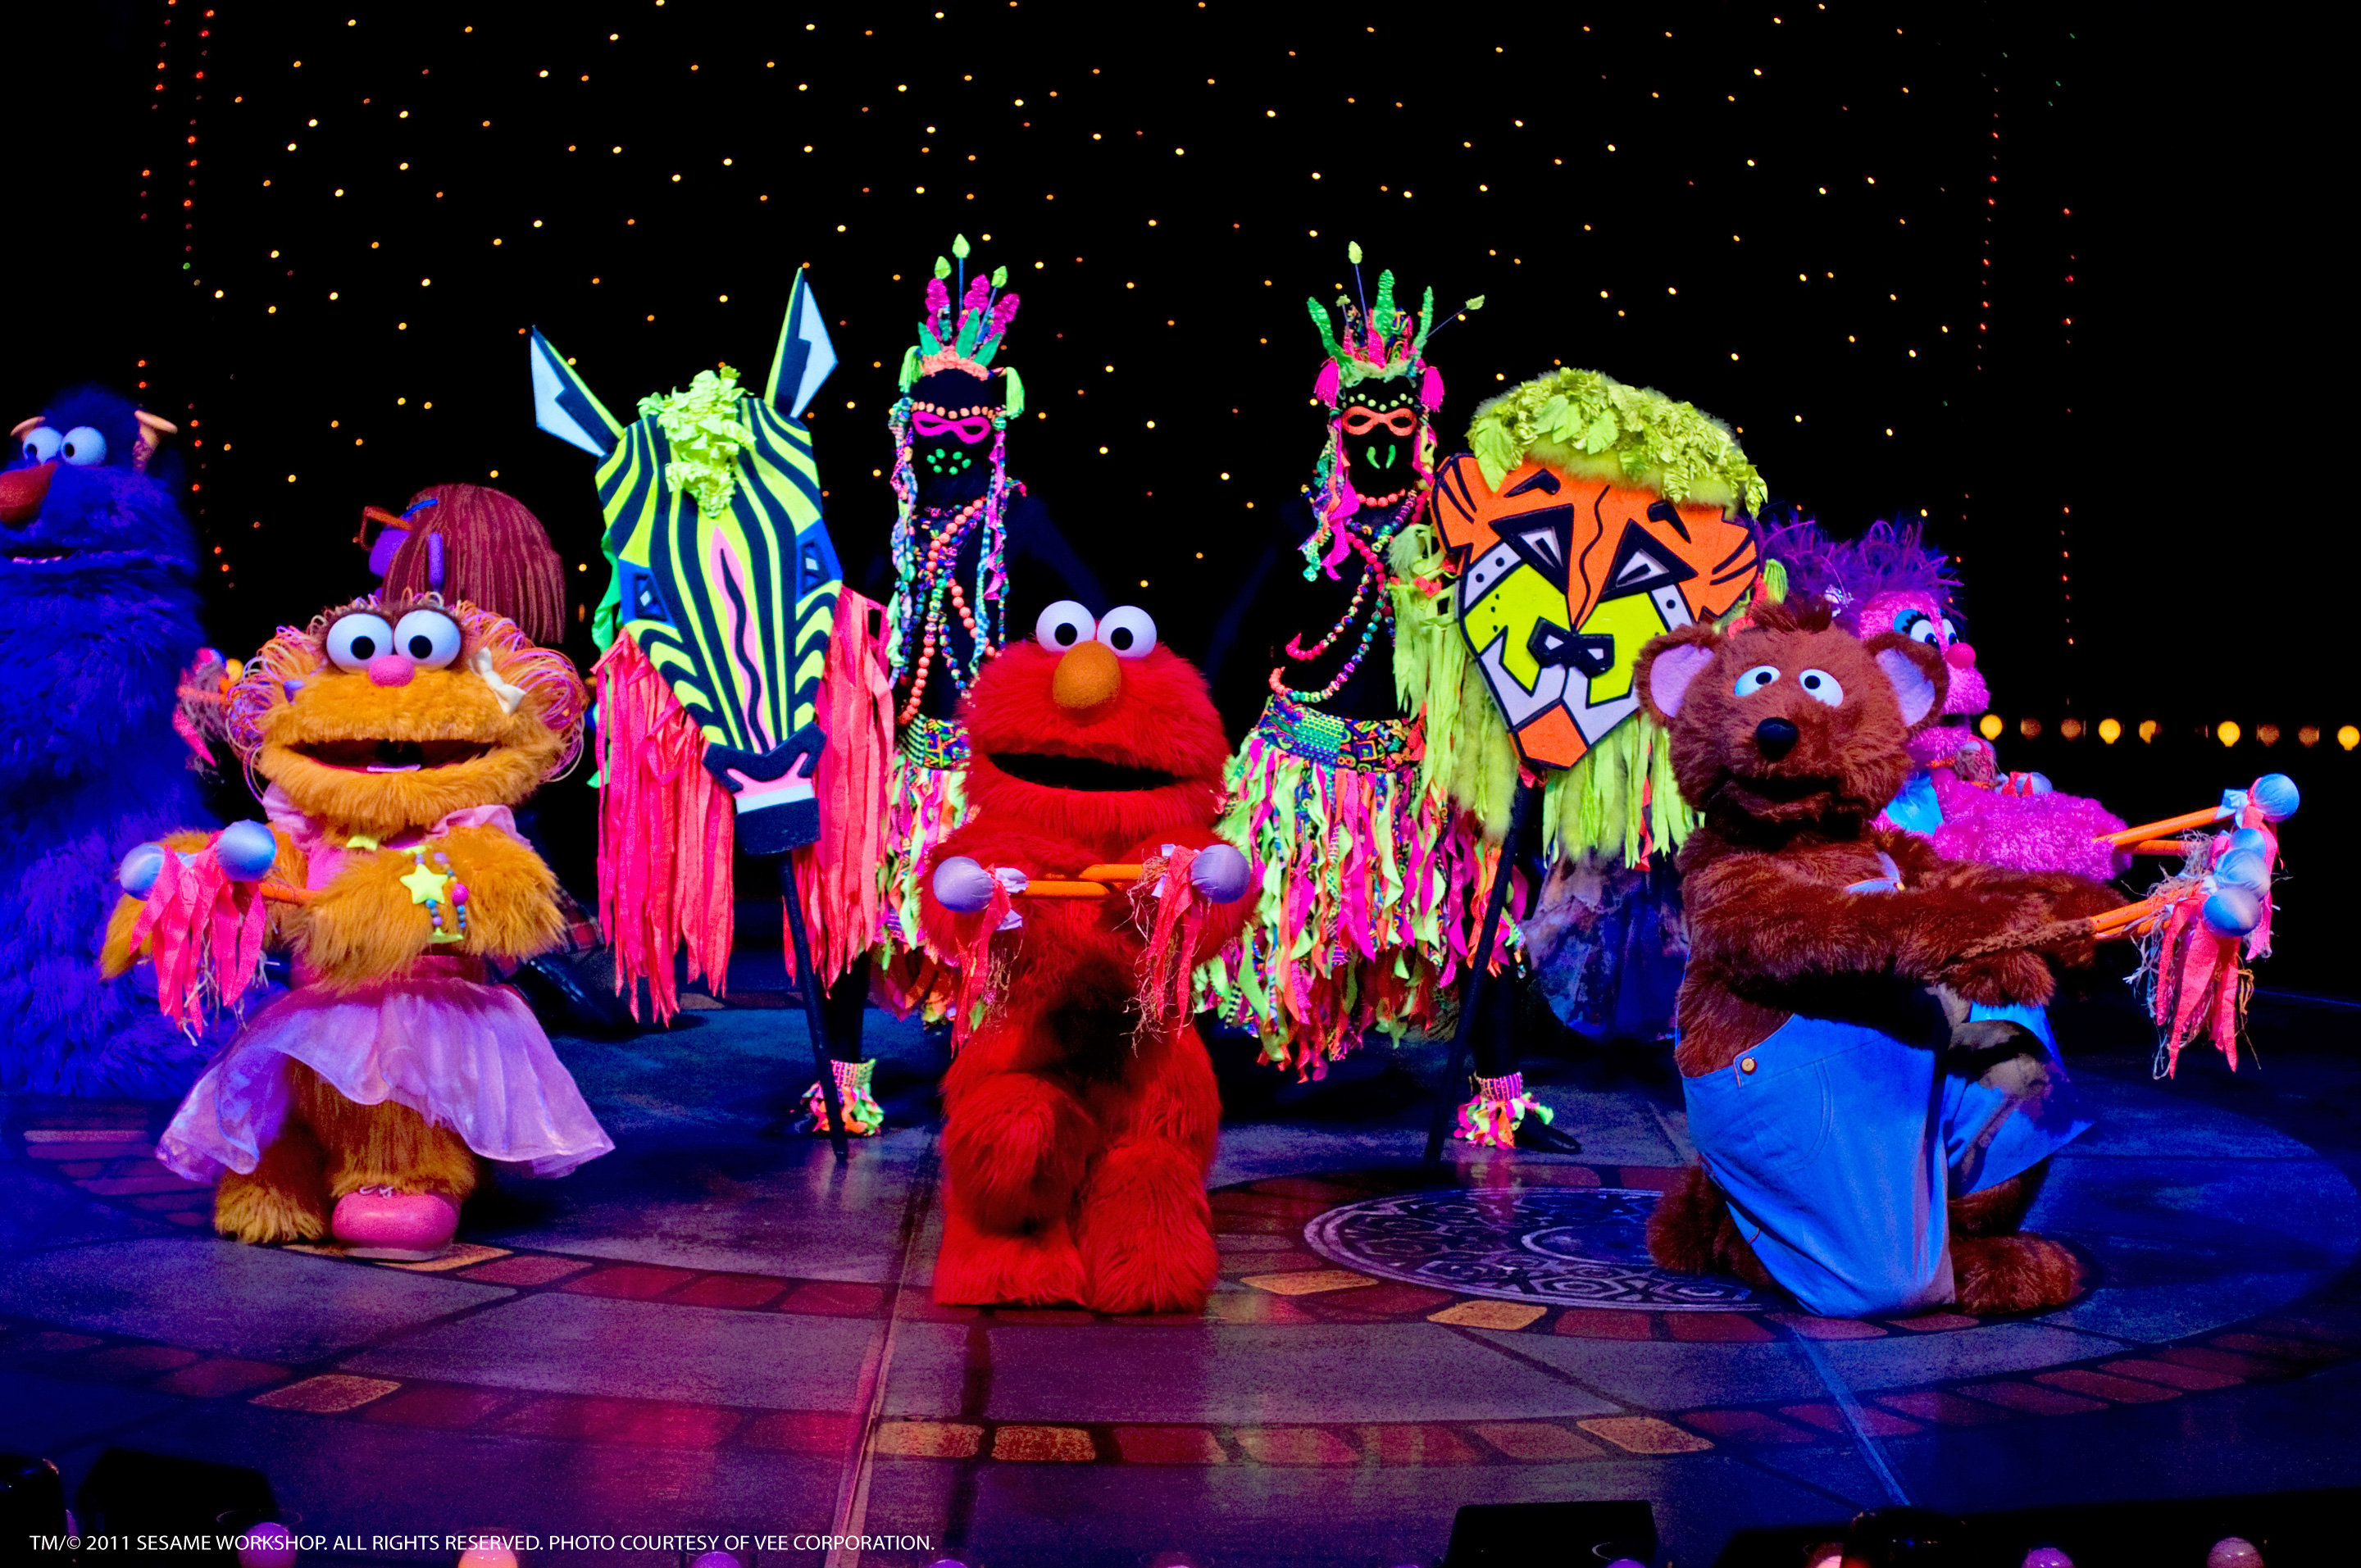 Sesame street live 1 2 3 imagine with elmo friends the sunny seats package includes a vip seat and a pre show meet greet photo opportunity with two sesame street live friends m4hsunfo